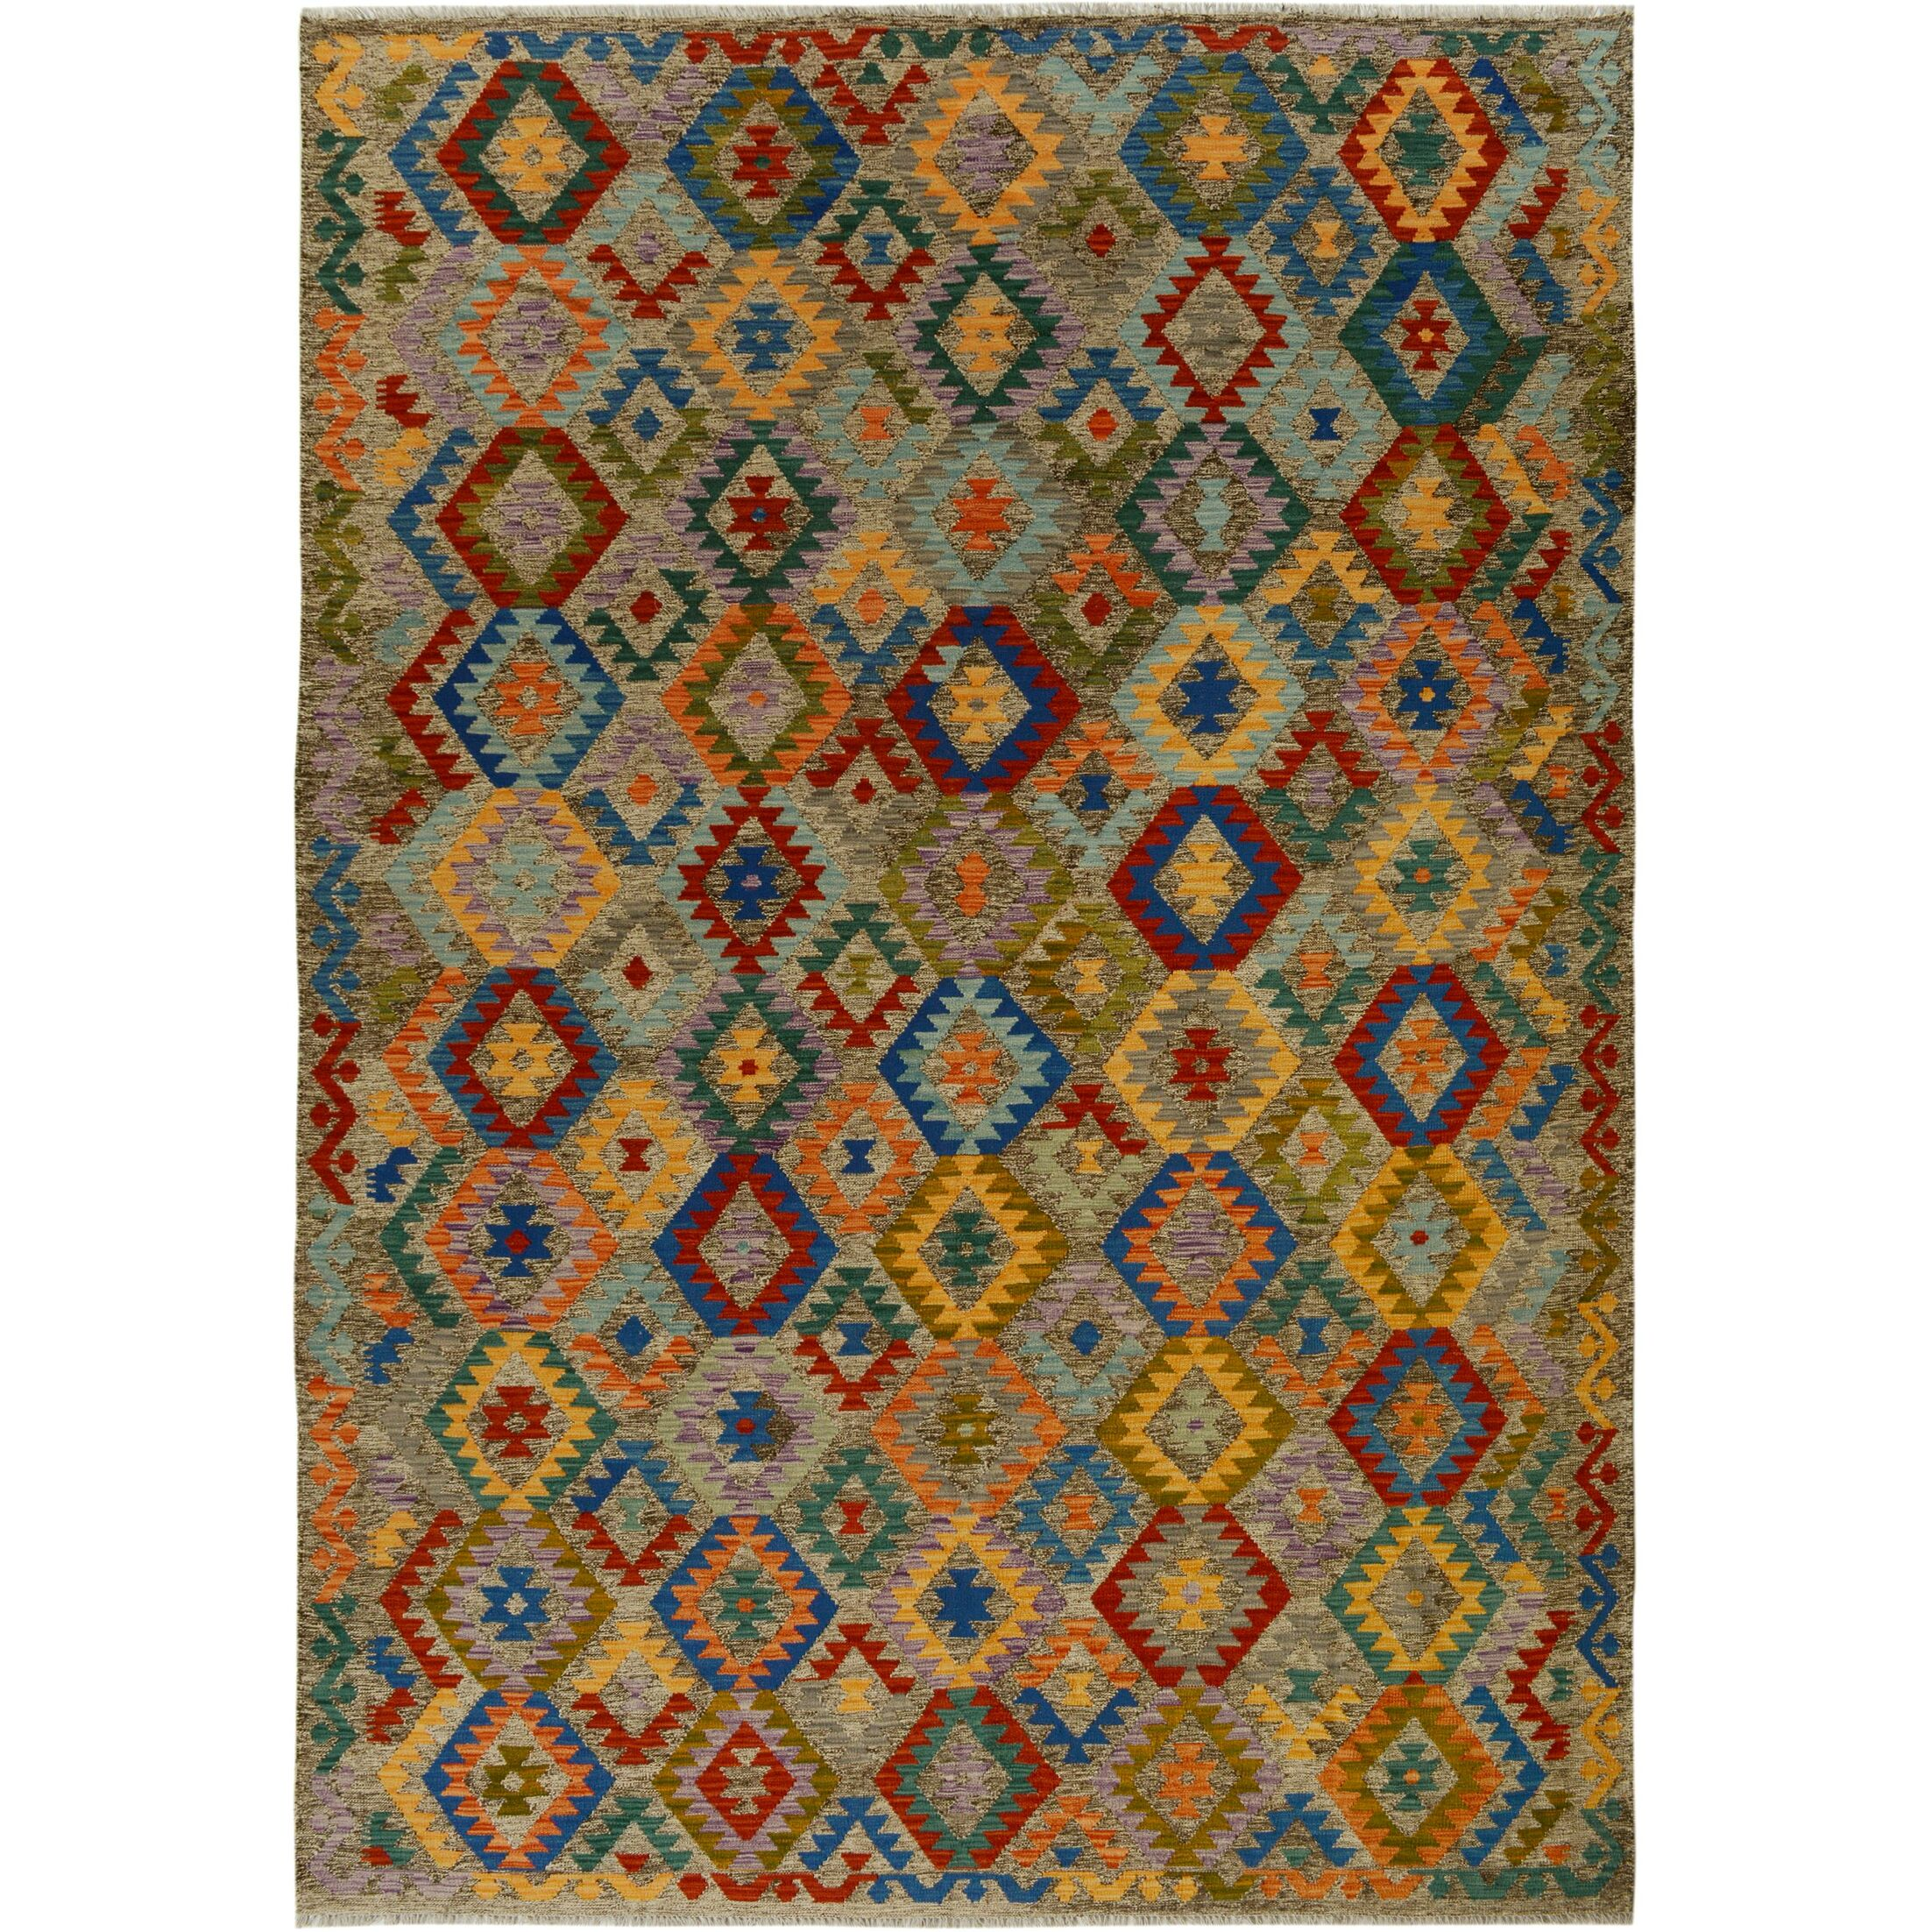 One-of-a-Kind Bakerstown Kilim Hand-Woven Wool Red/Blue Area Rug